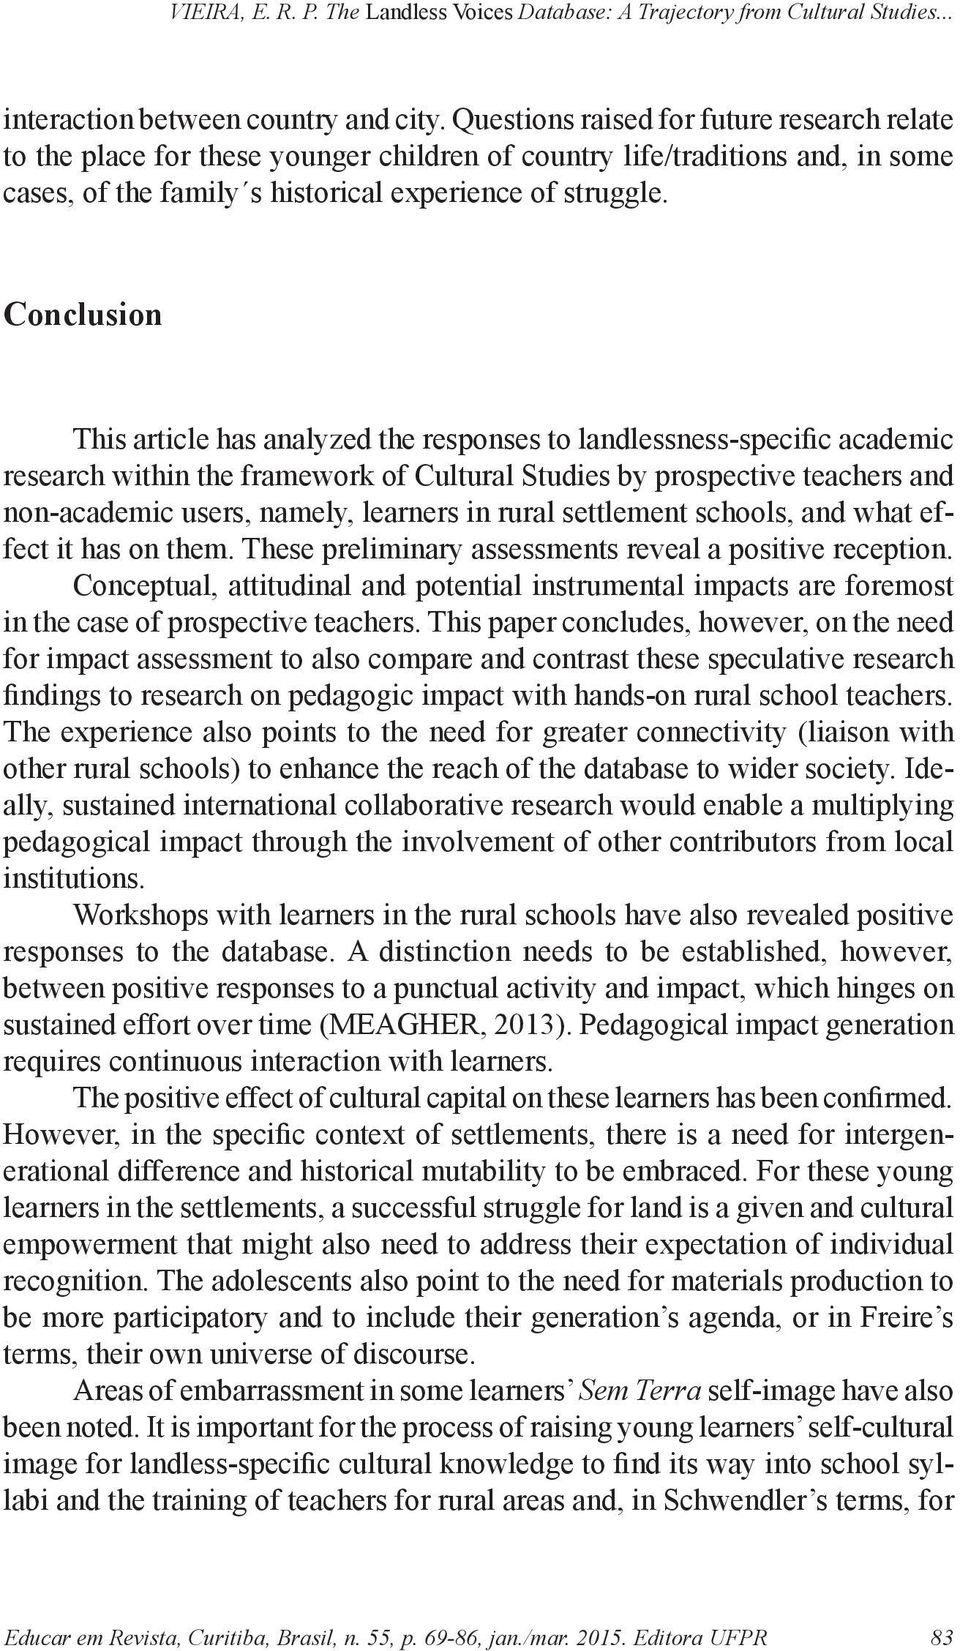 Conclusion This article has analyzed the responses to landlessness-specific academic research within the framework of Cultural Studies by prospective teachers and non-academic users, namely, learners